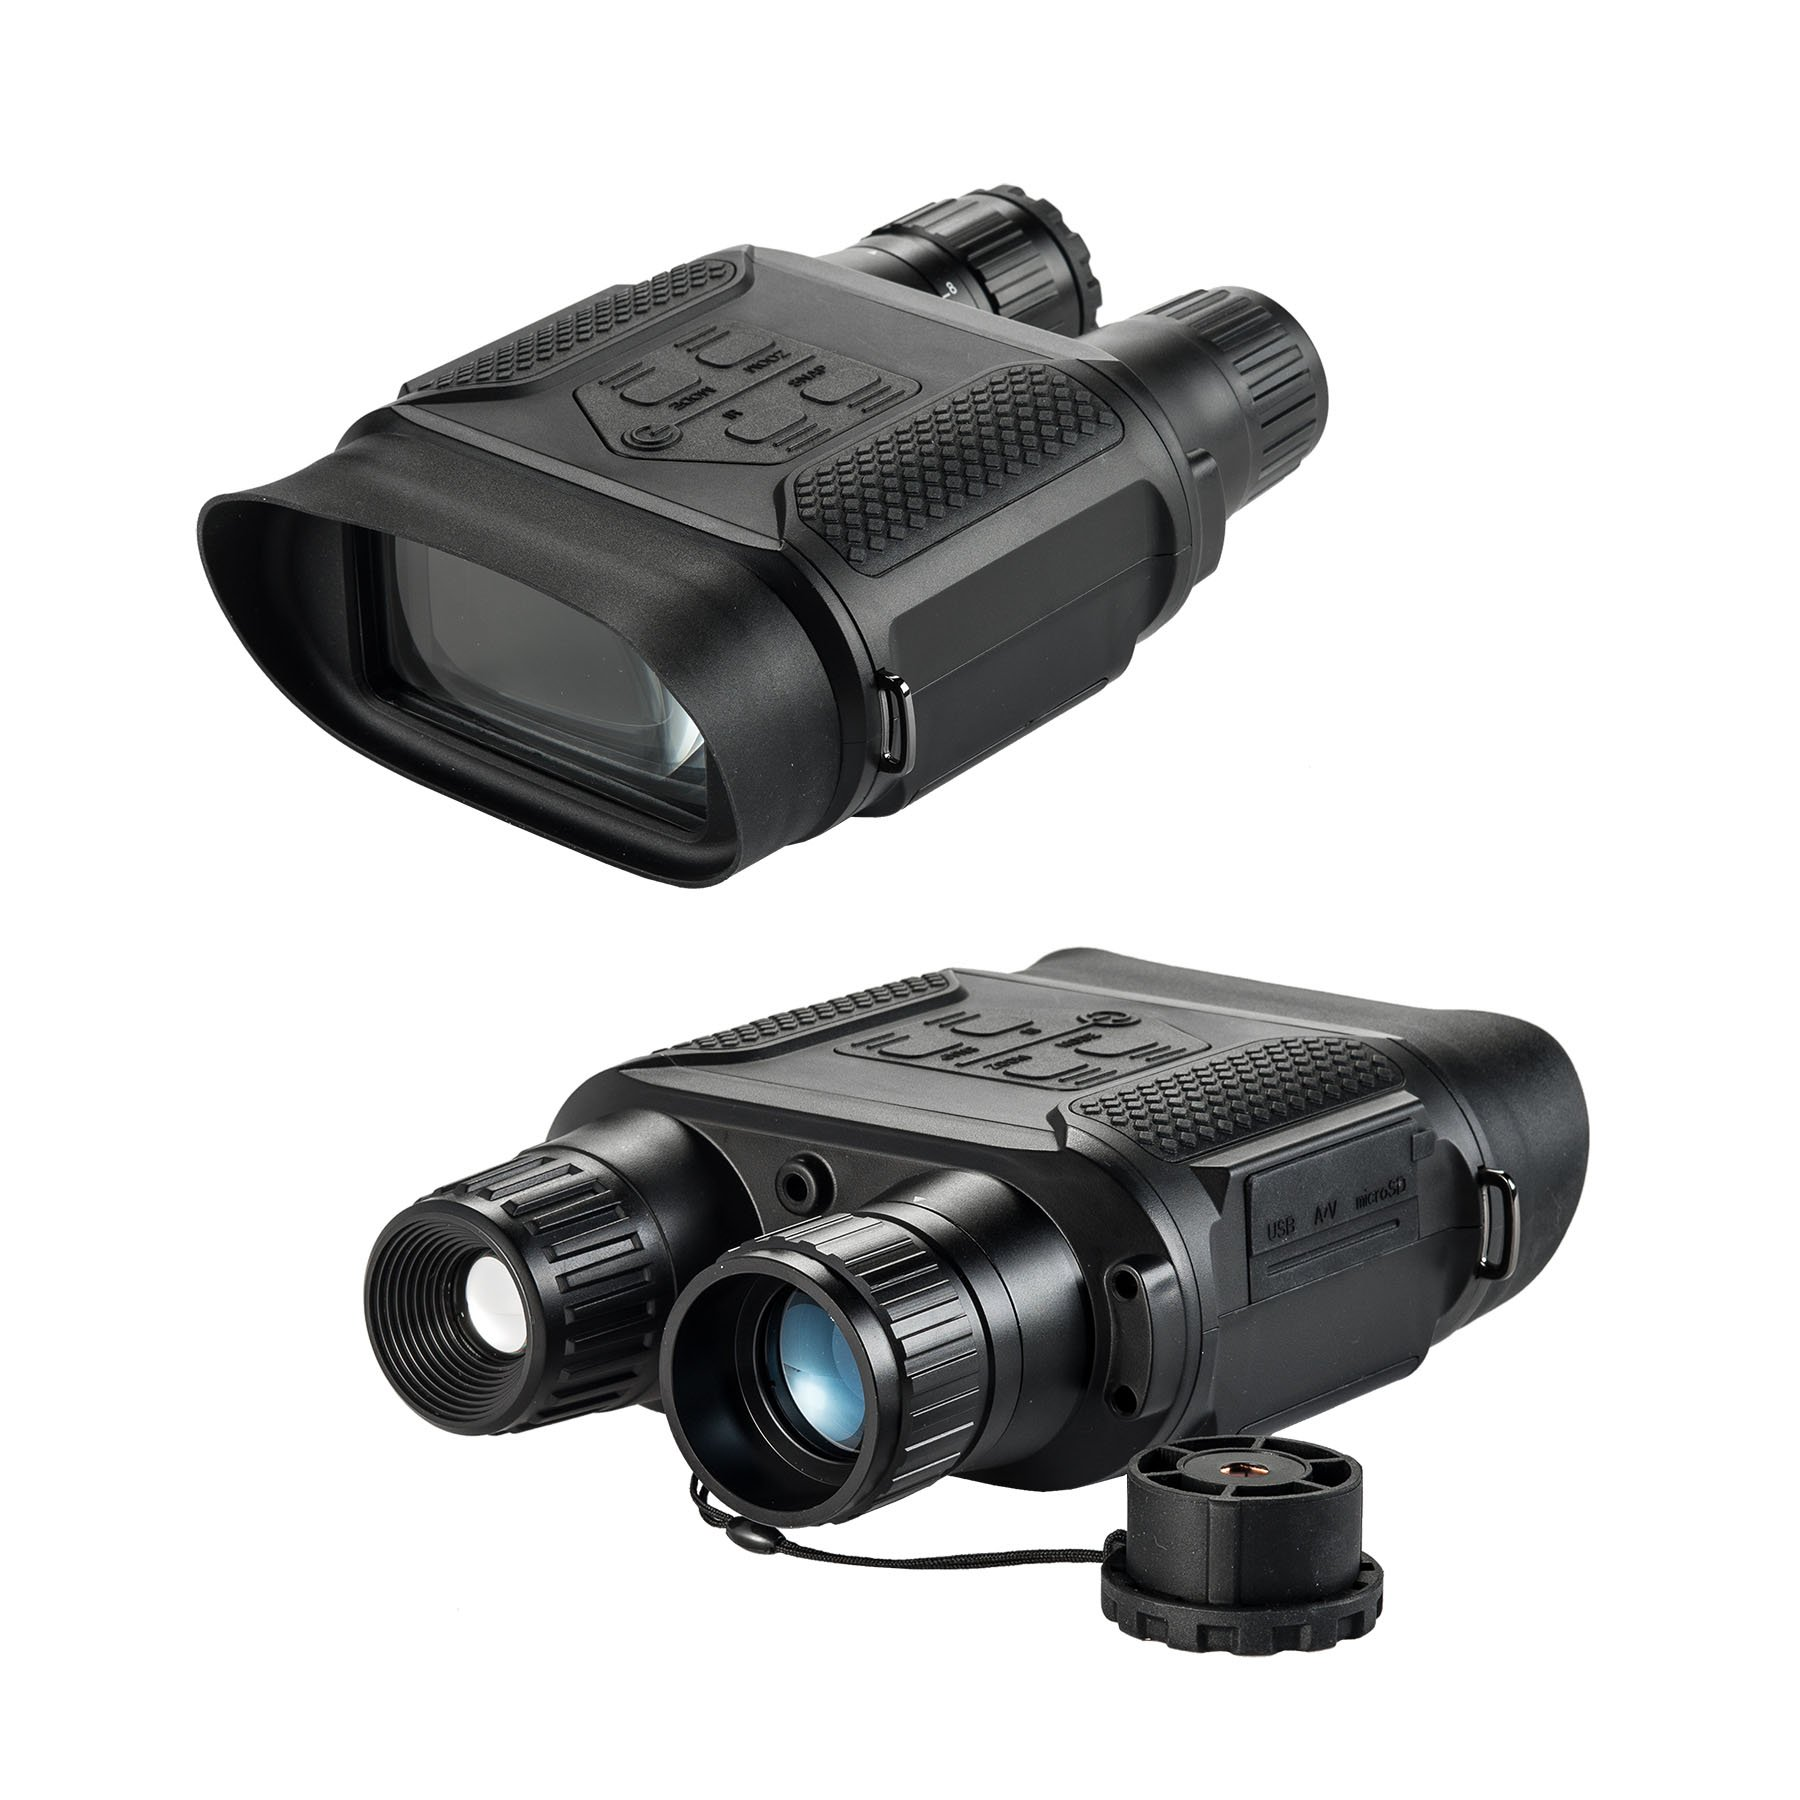 Pinty 7x31 Night Vision Binoculars Digital Infrared Night Vision Scope, 640x480,30FPS, Photo Camera and Camcorder with 400m, 1300ft Viewing Distance, 4 inch Large Viewing by Pinty